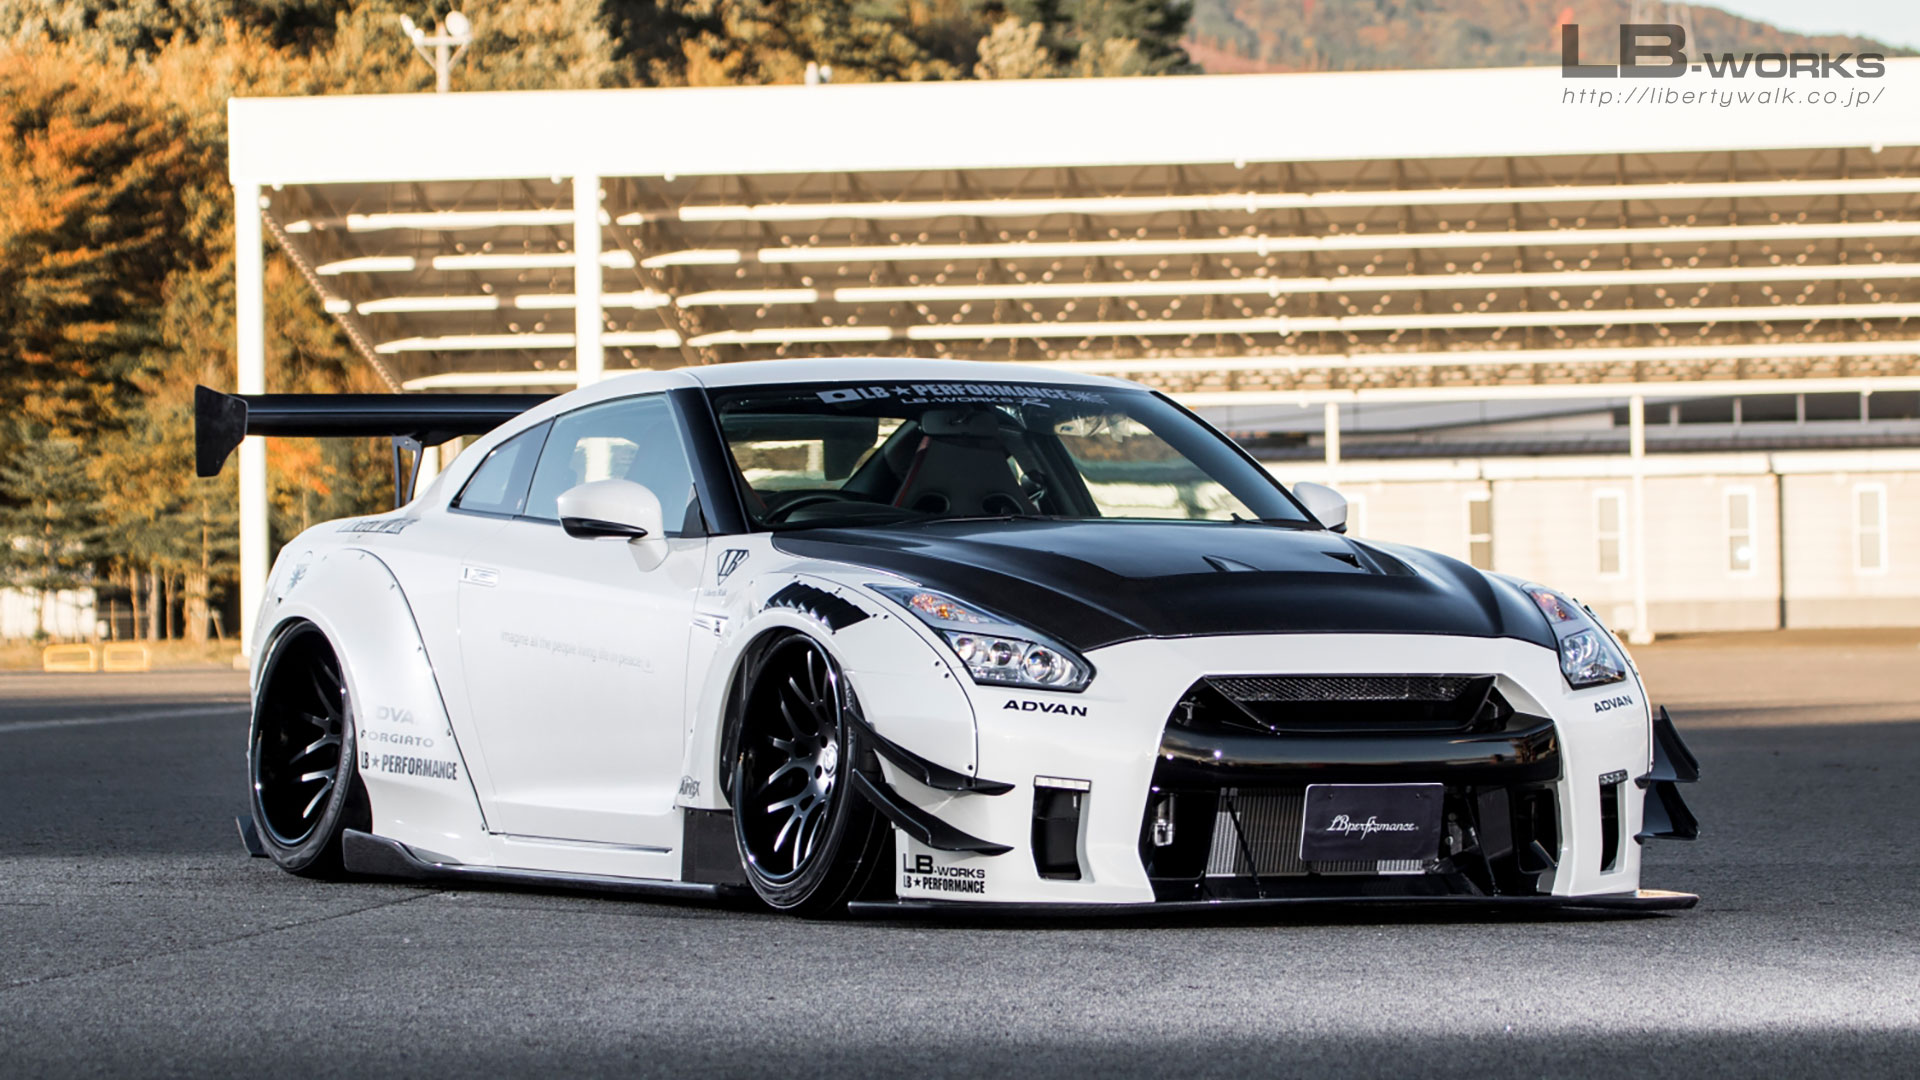 lb works nissan gt r r35 type 2 liberty walk. Black Bedroom Furniture Sets. Home Design Ideas